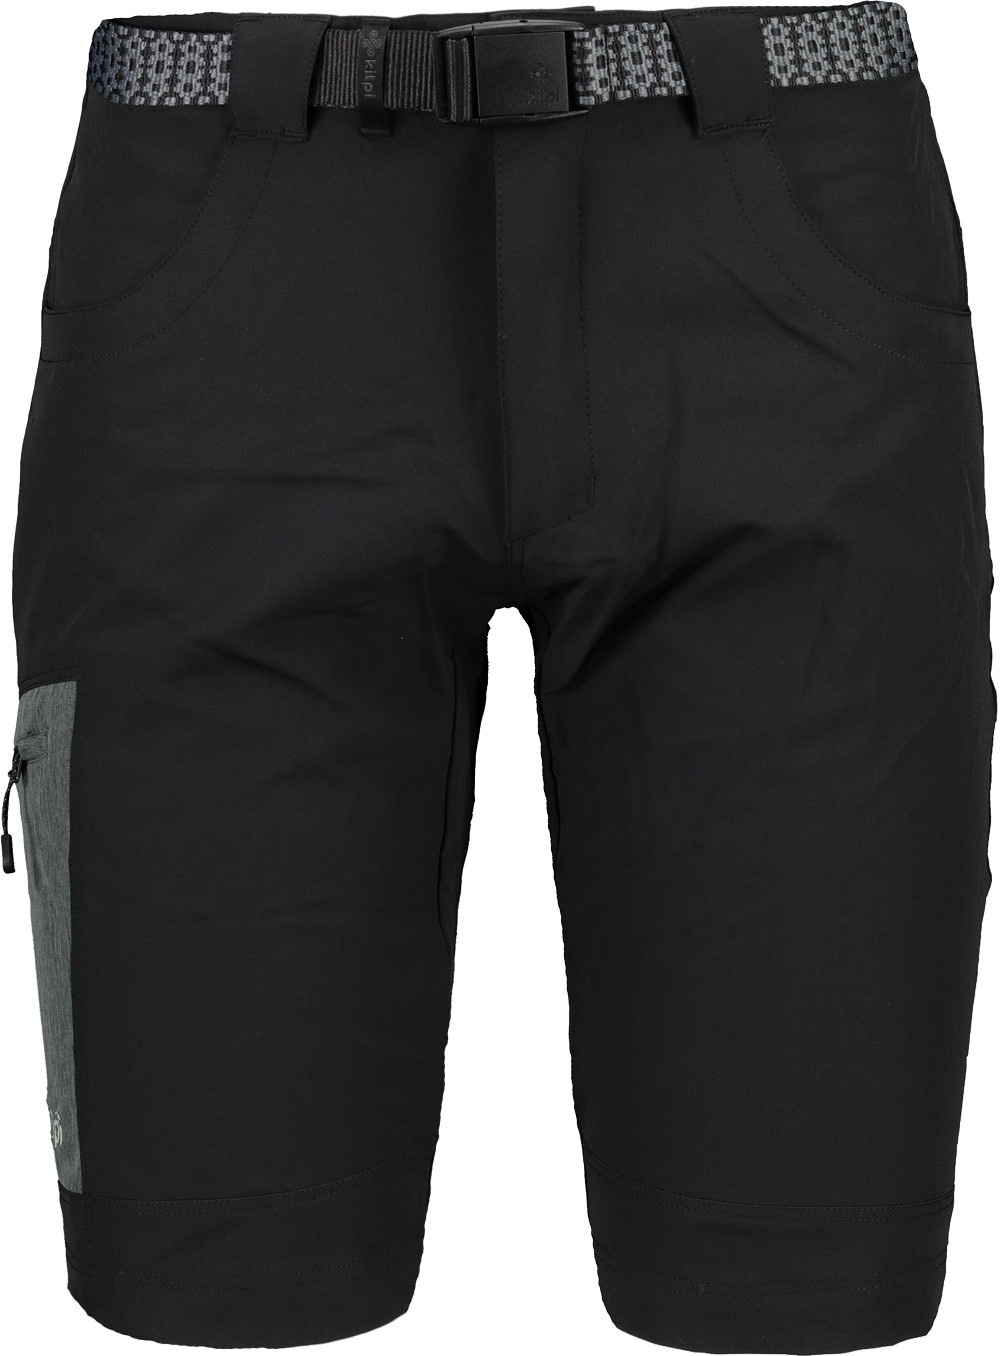 Men's shorts Kilpi JOSEPH-M